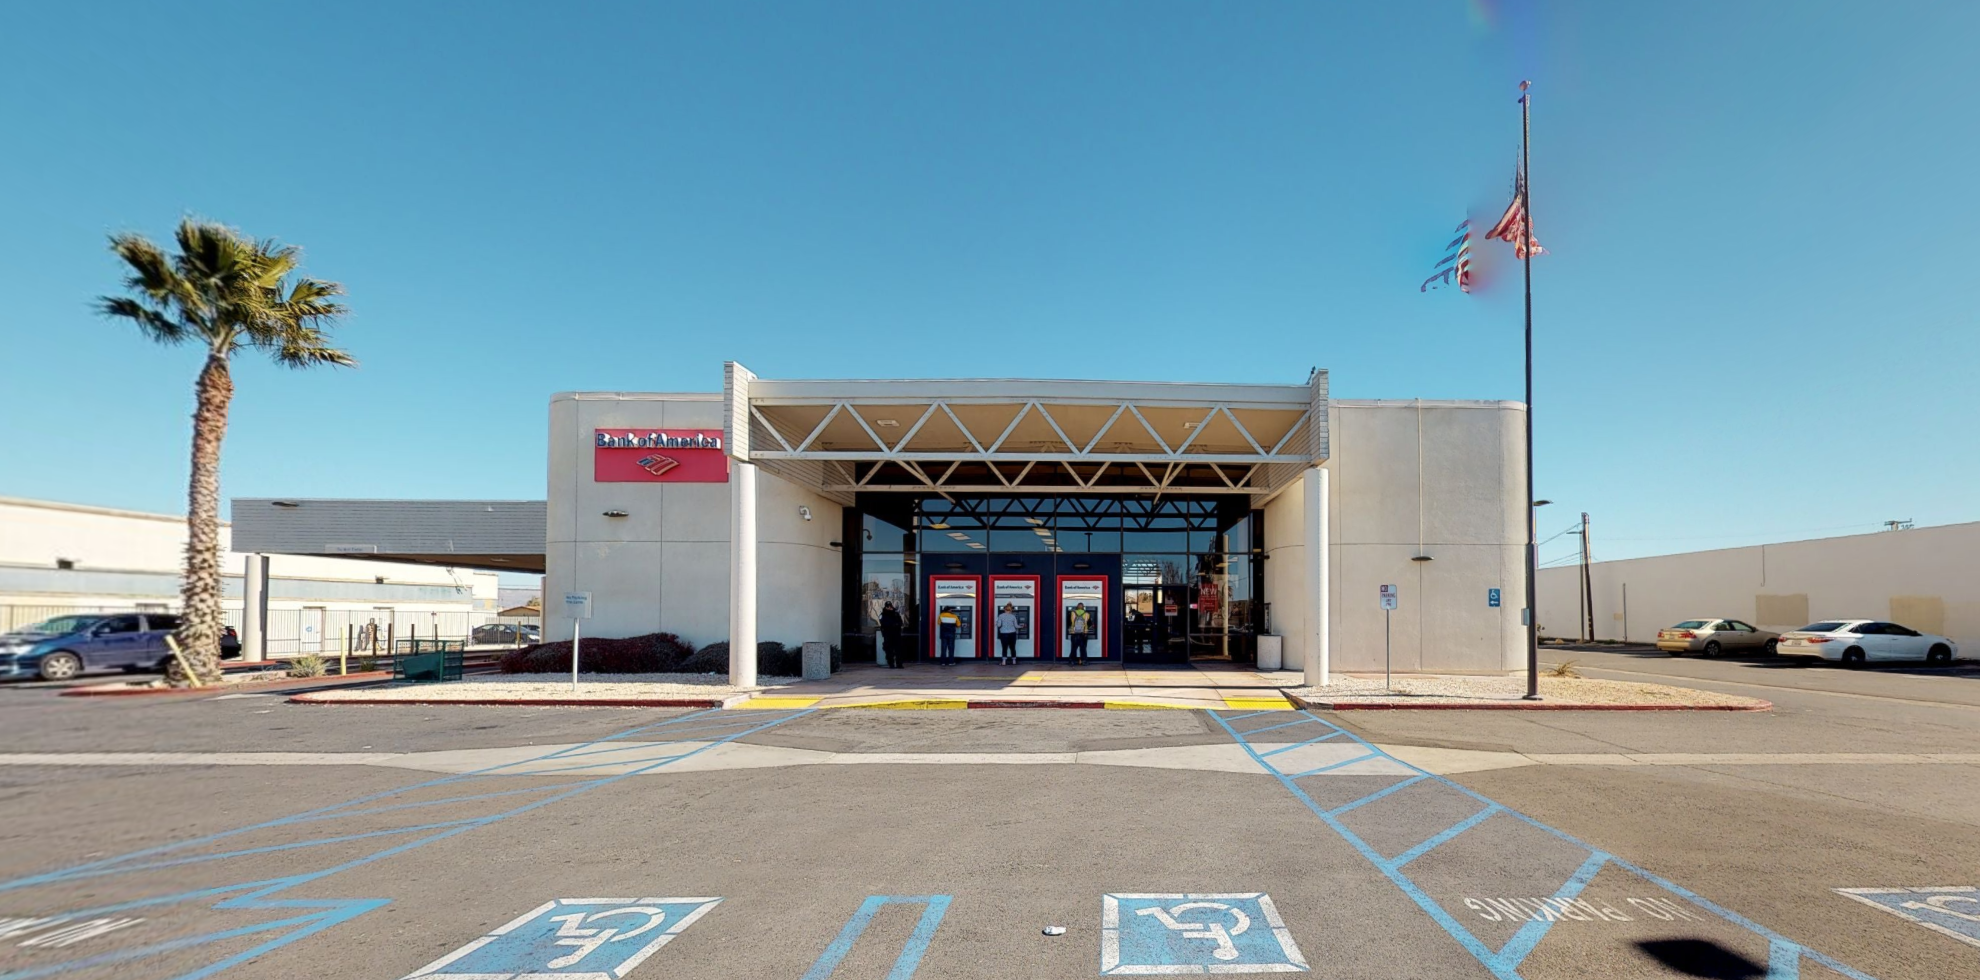 Bank of America financial center with drive-thru ATM | 14723 7th St, Victorville, CA 92395